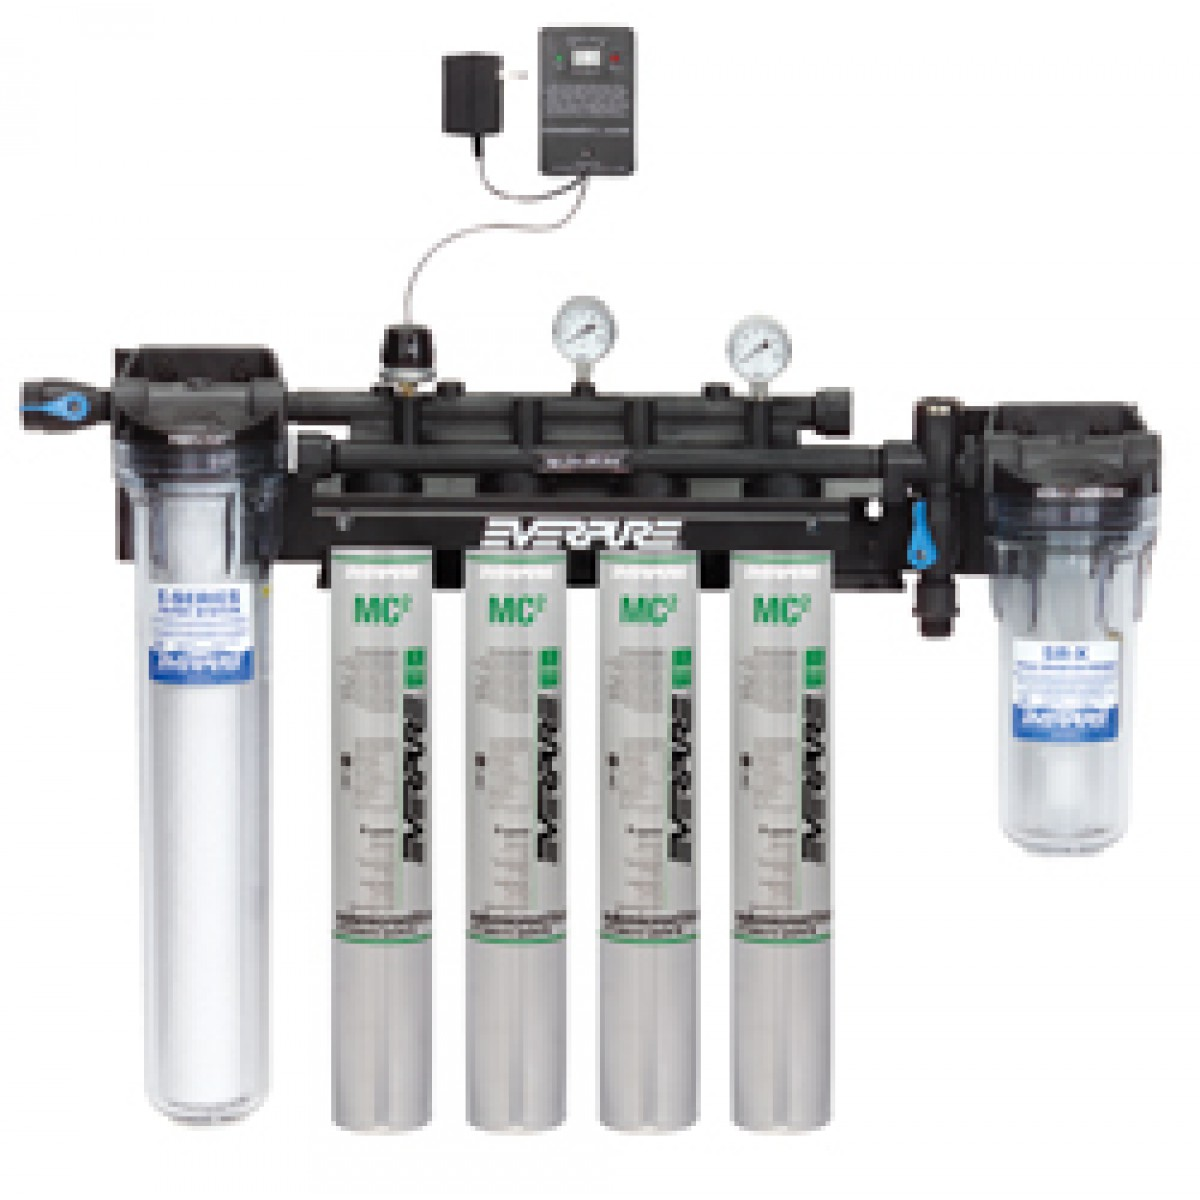 Everpure ev9437 11 high flow csr quad mc2 system low for Everpure water filter system reviews